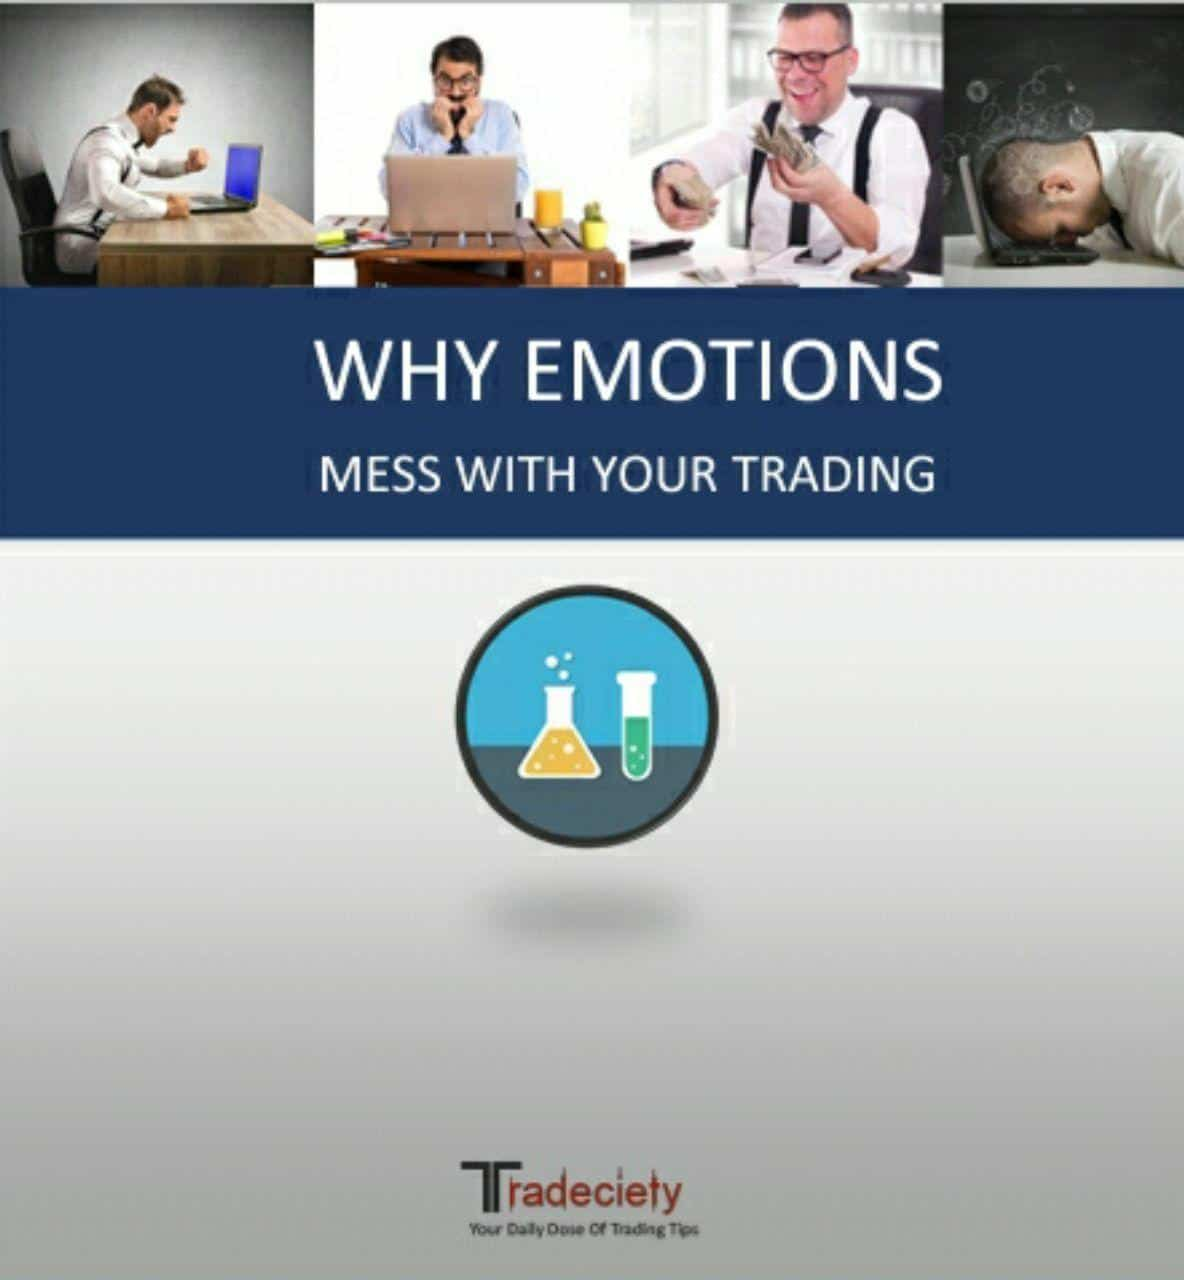 WHY EMOTIONS MESS WITH YOUR TRADING